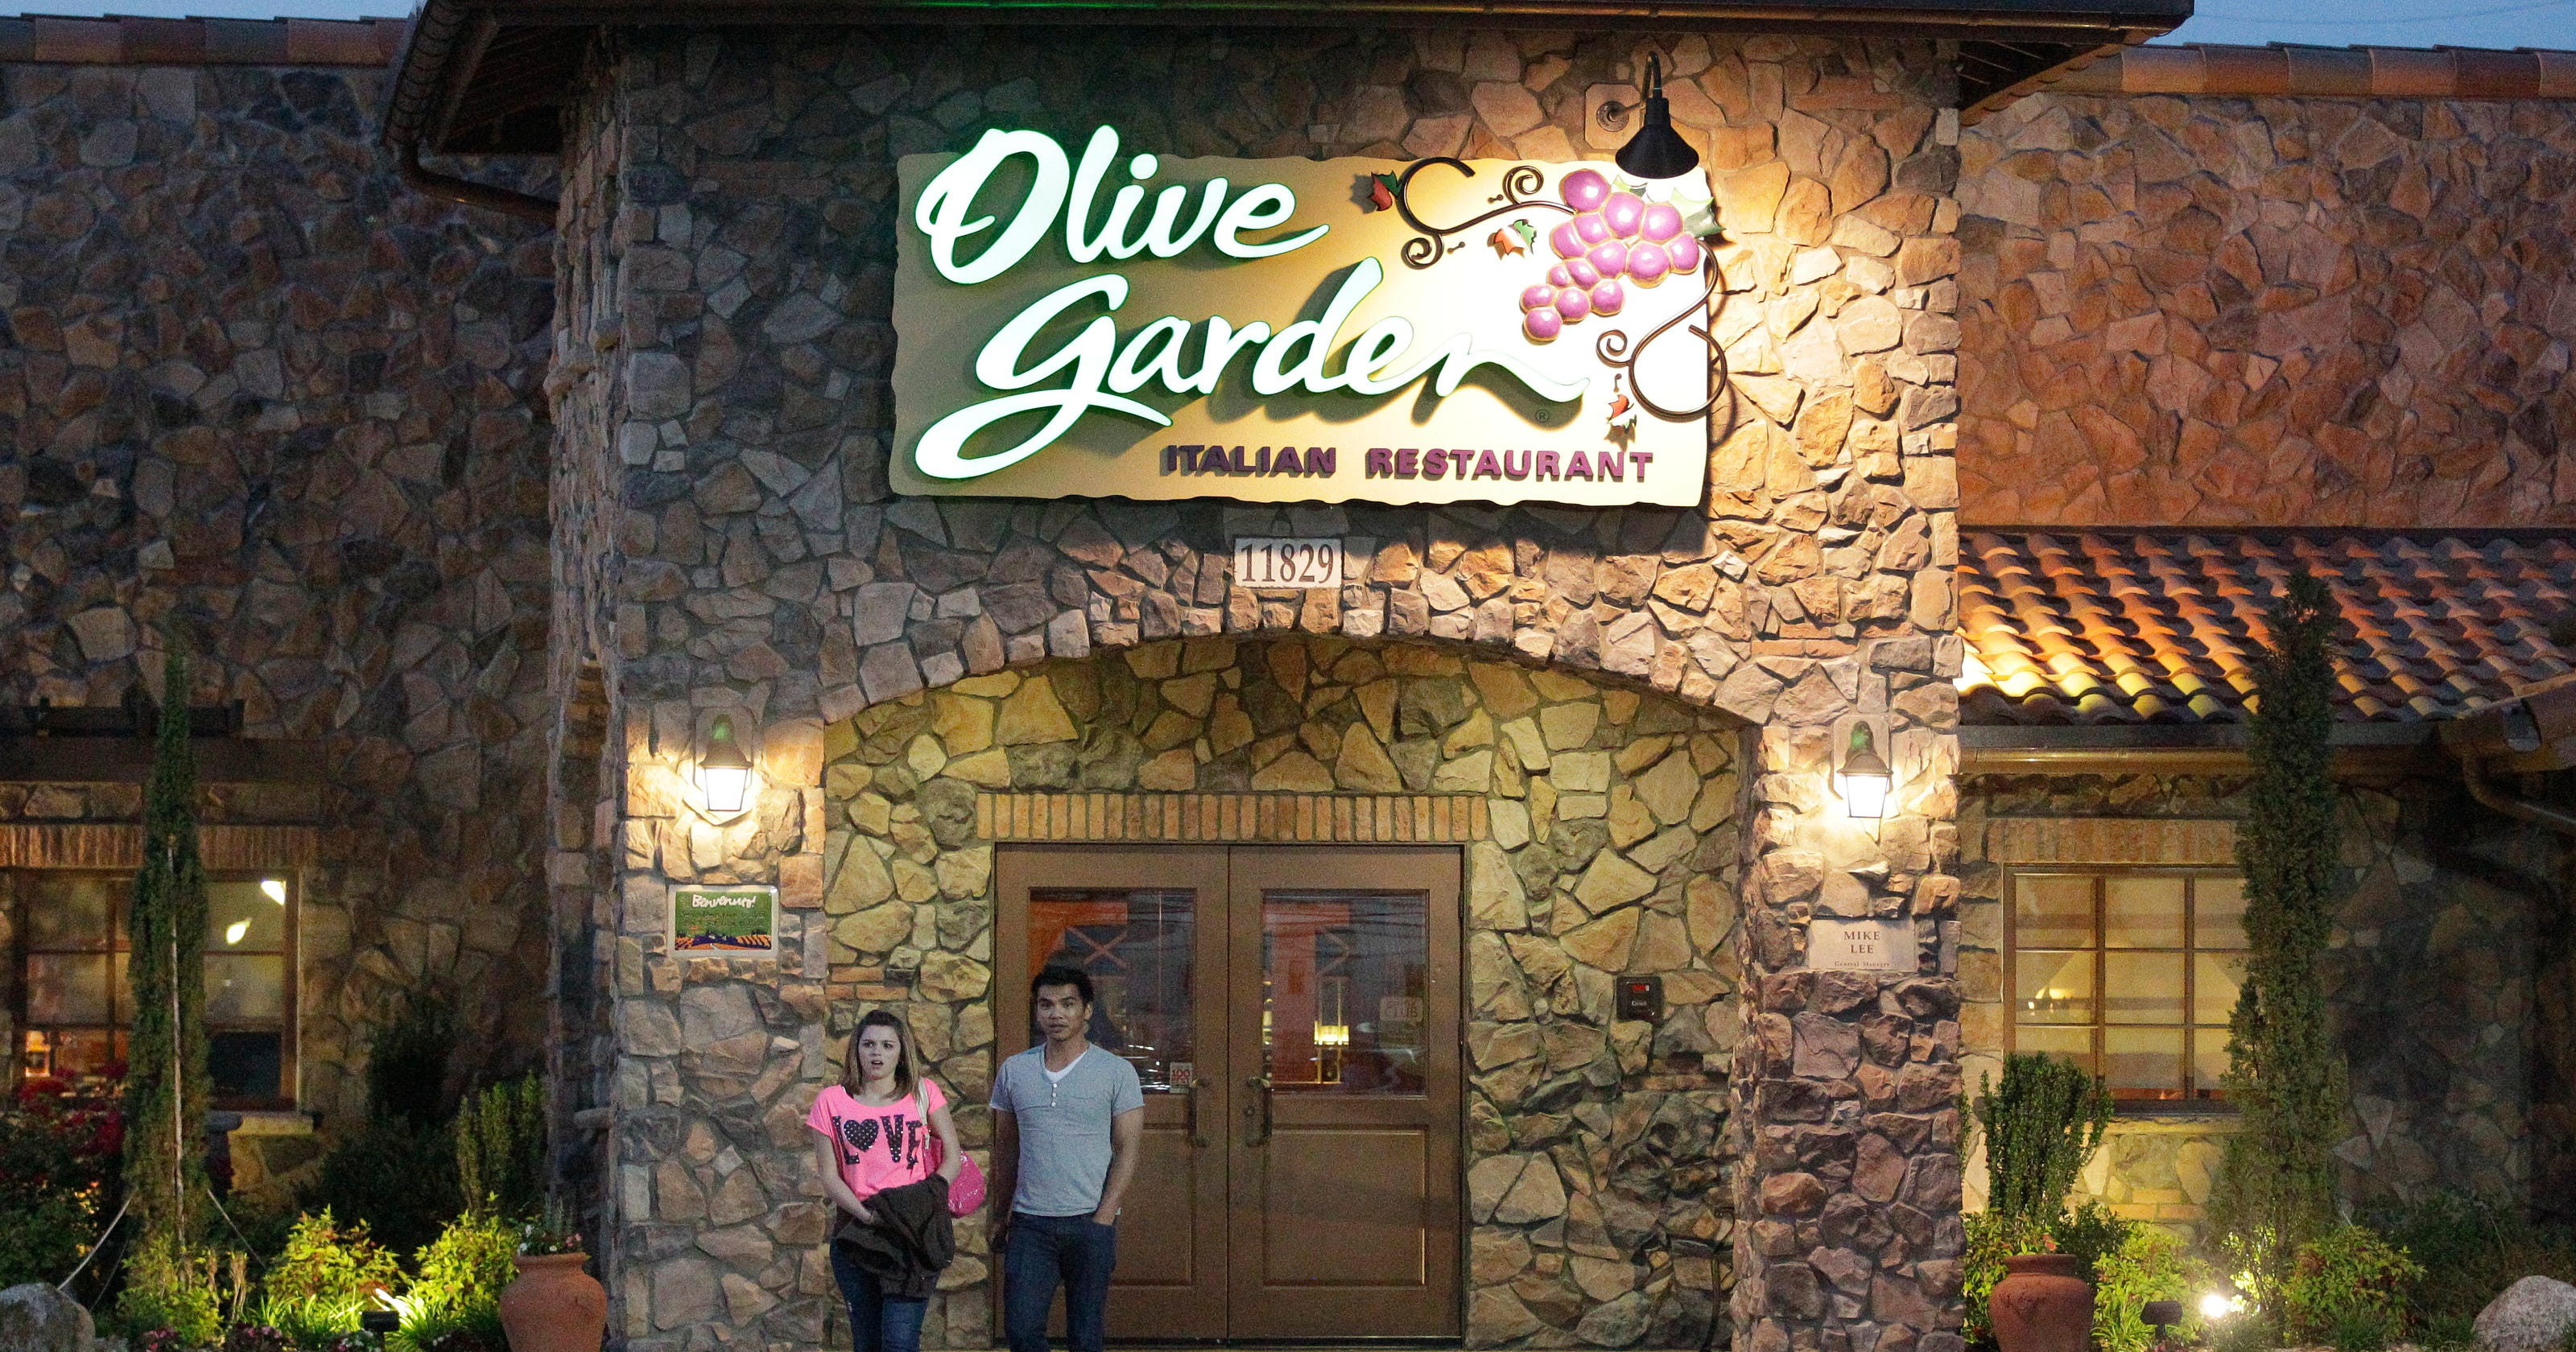 Chairman of Olive Garden parent company resigns